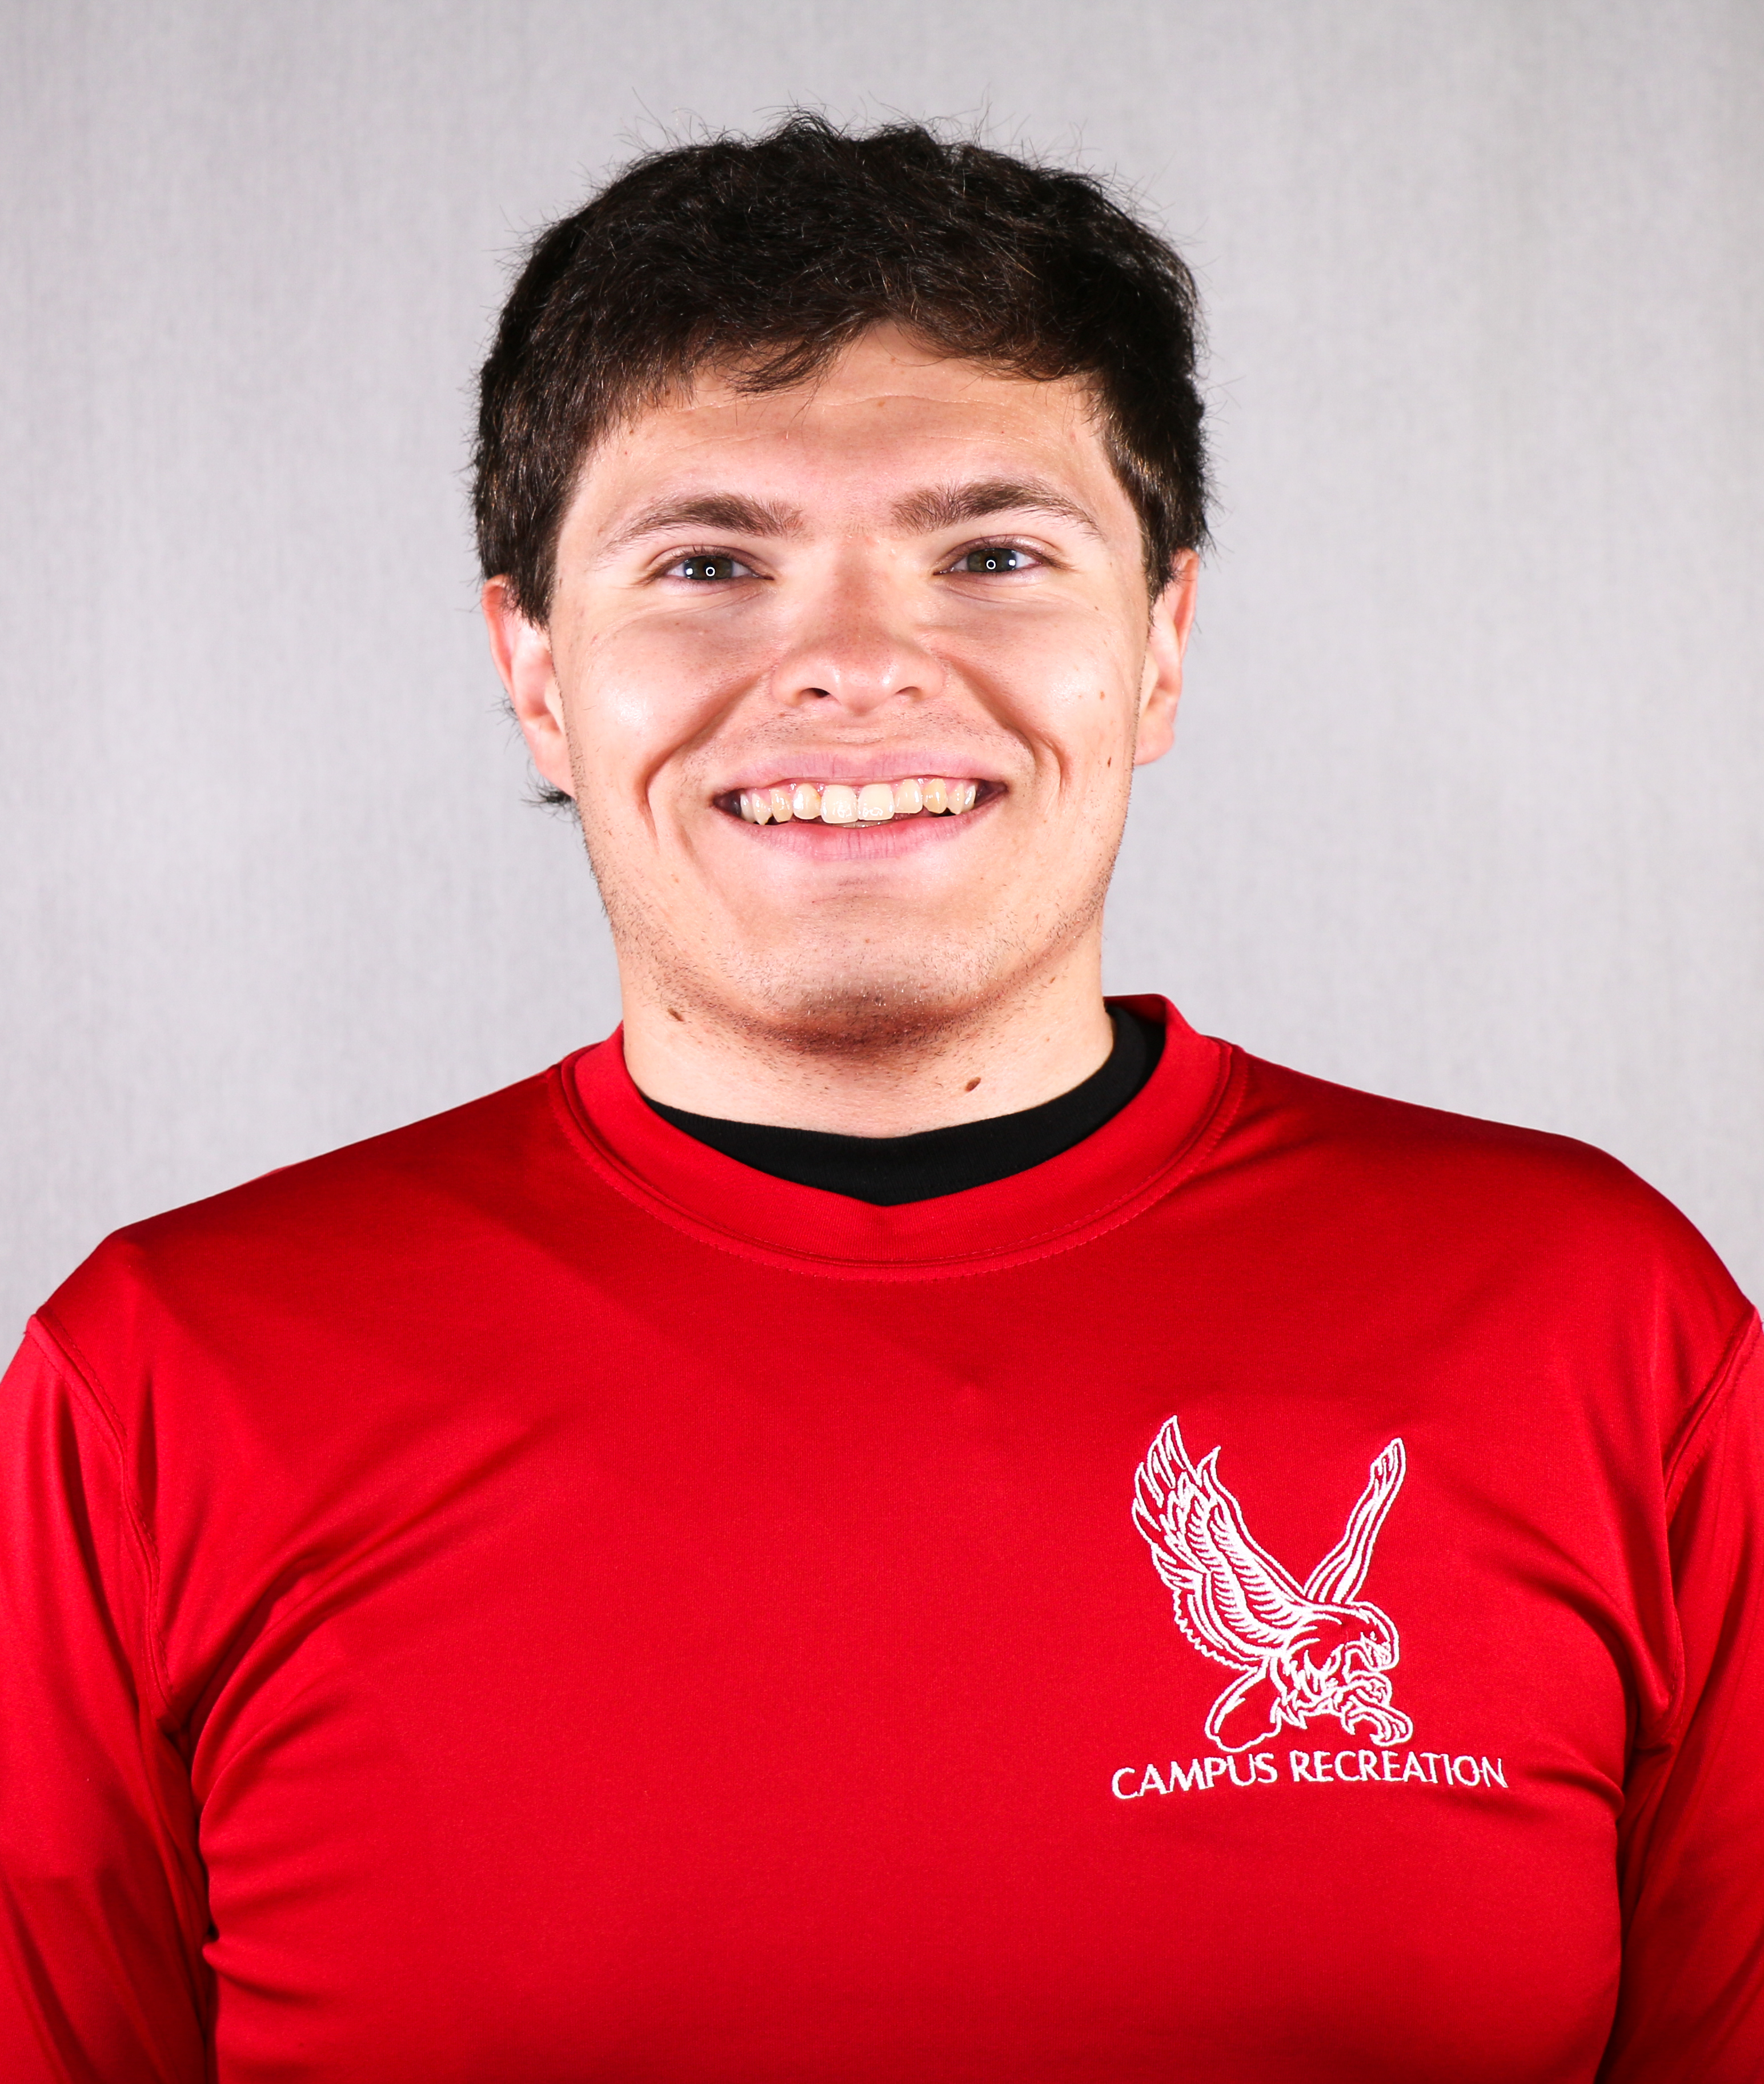 Headshot of Brandon Marques wearing a red Campus Recreation t-shirt.